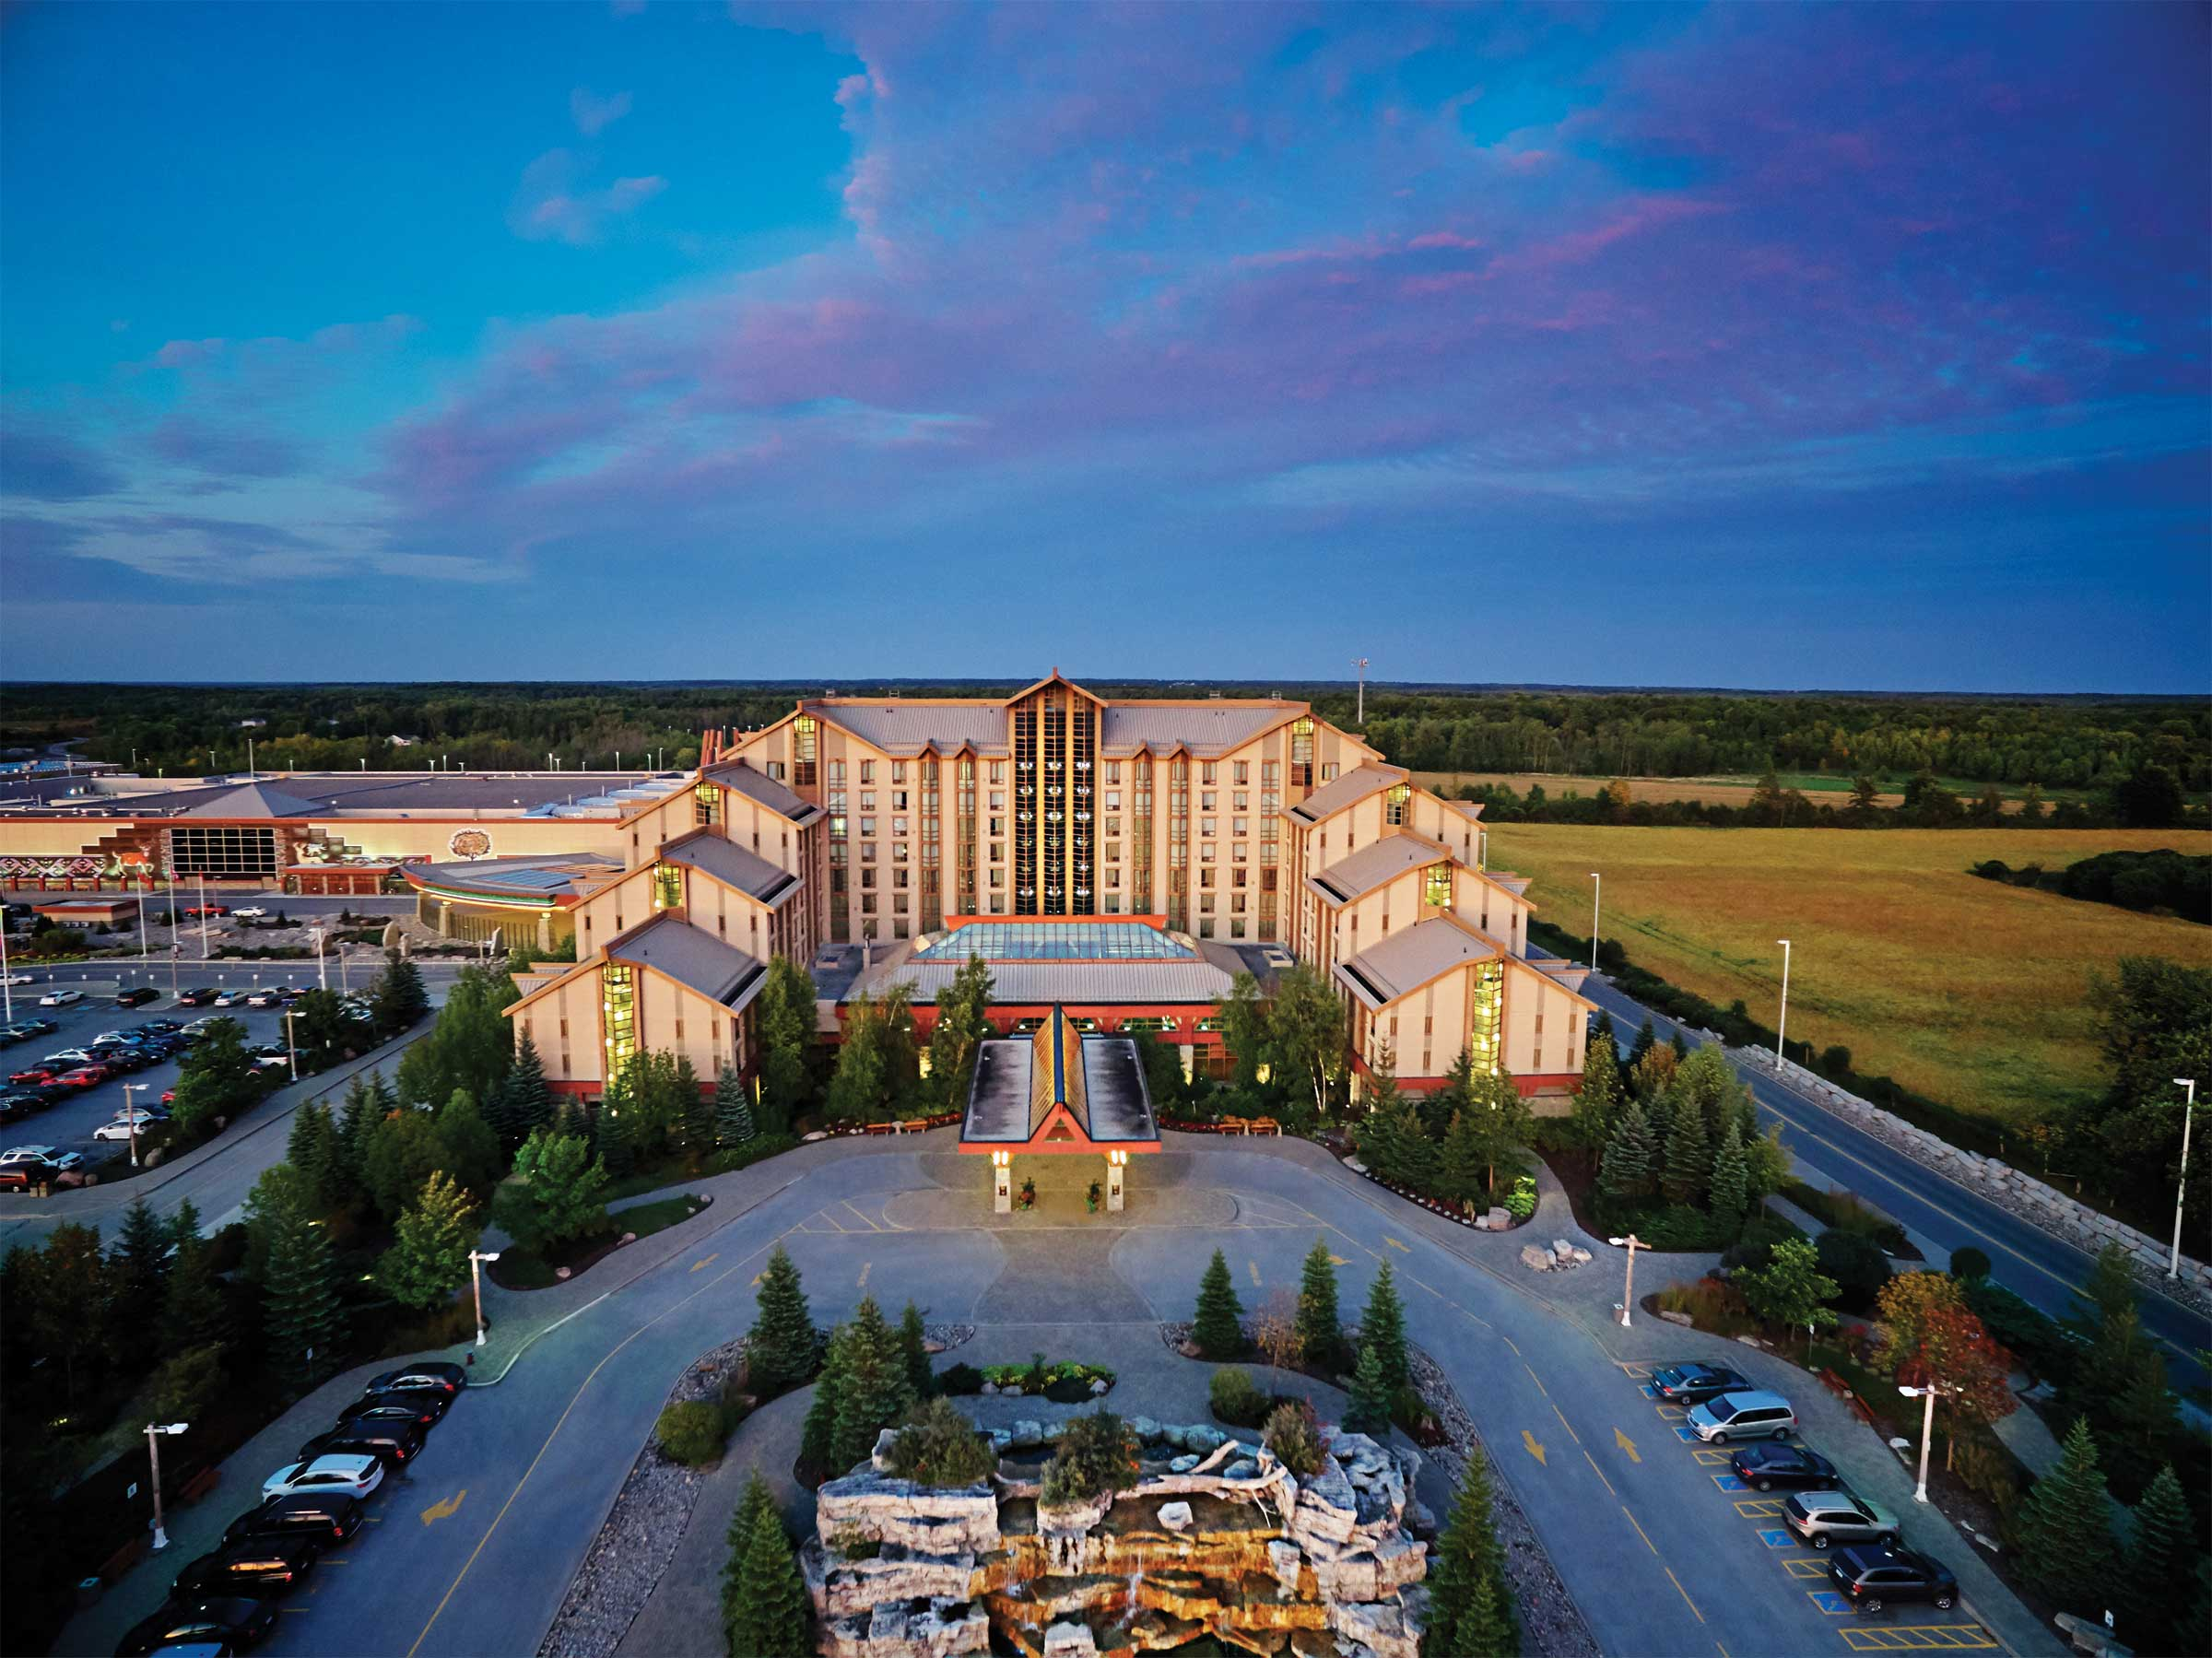 Casino Rama hotel and resort